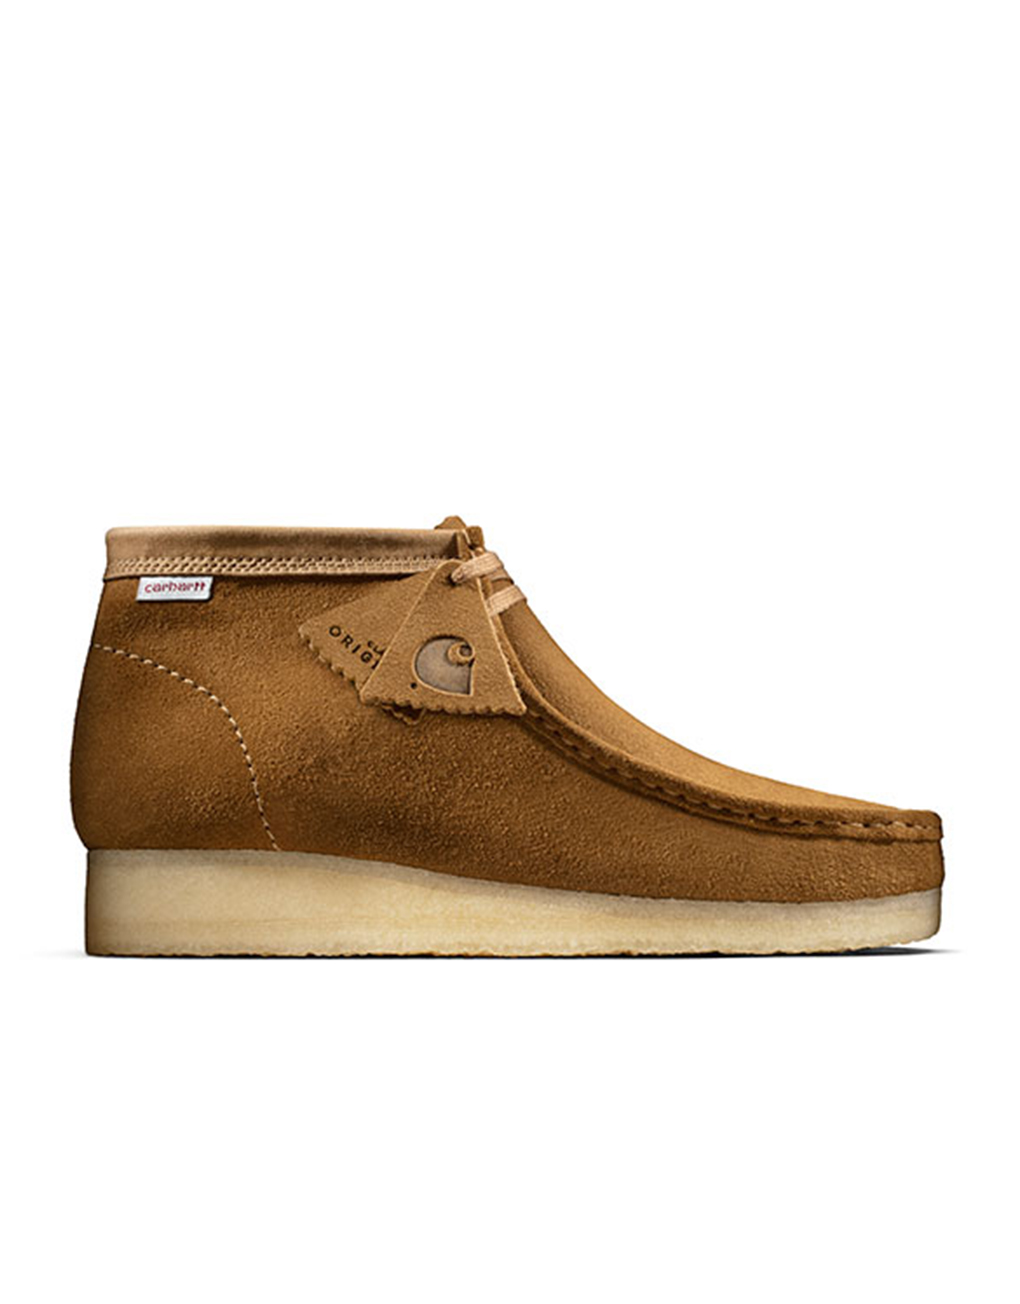 CLARKS Wallabee Boot Clarks Originals x Carhartt